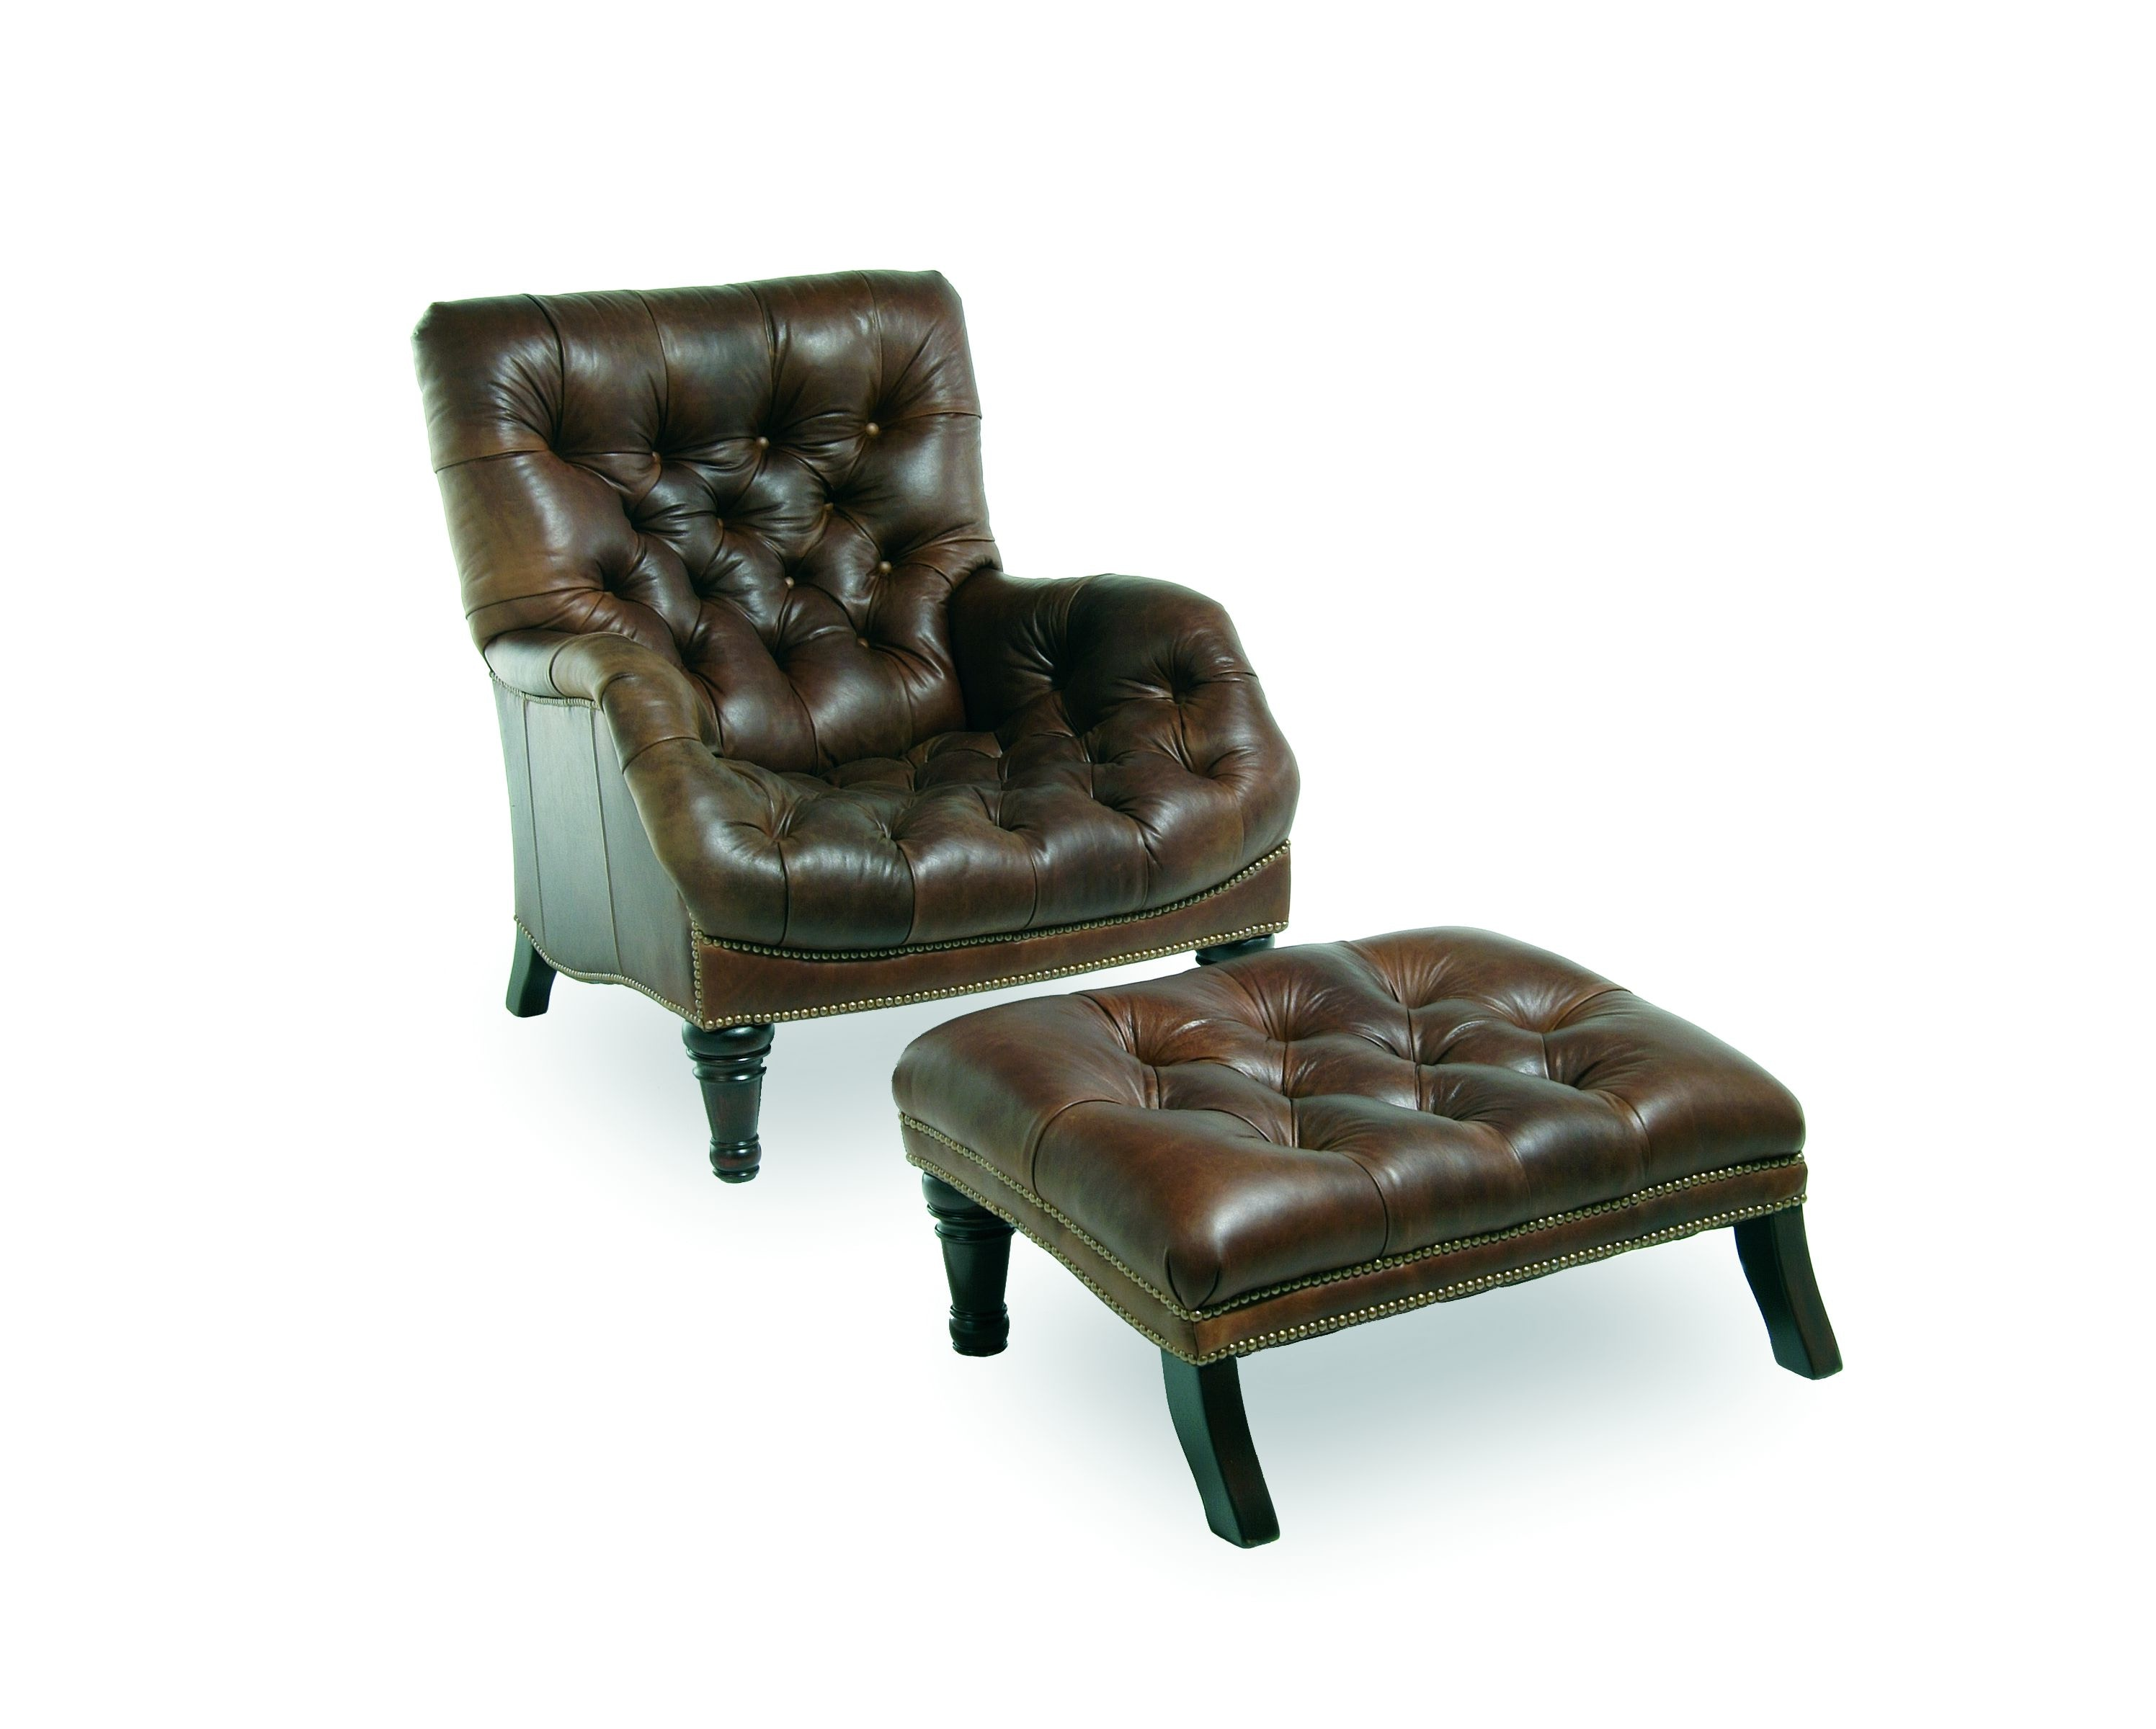 Chaddock Sleepy Hollow Chair (Leather) L 0278 1